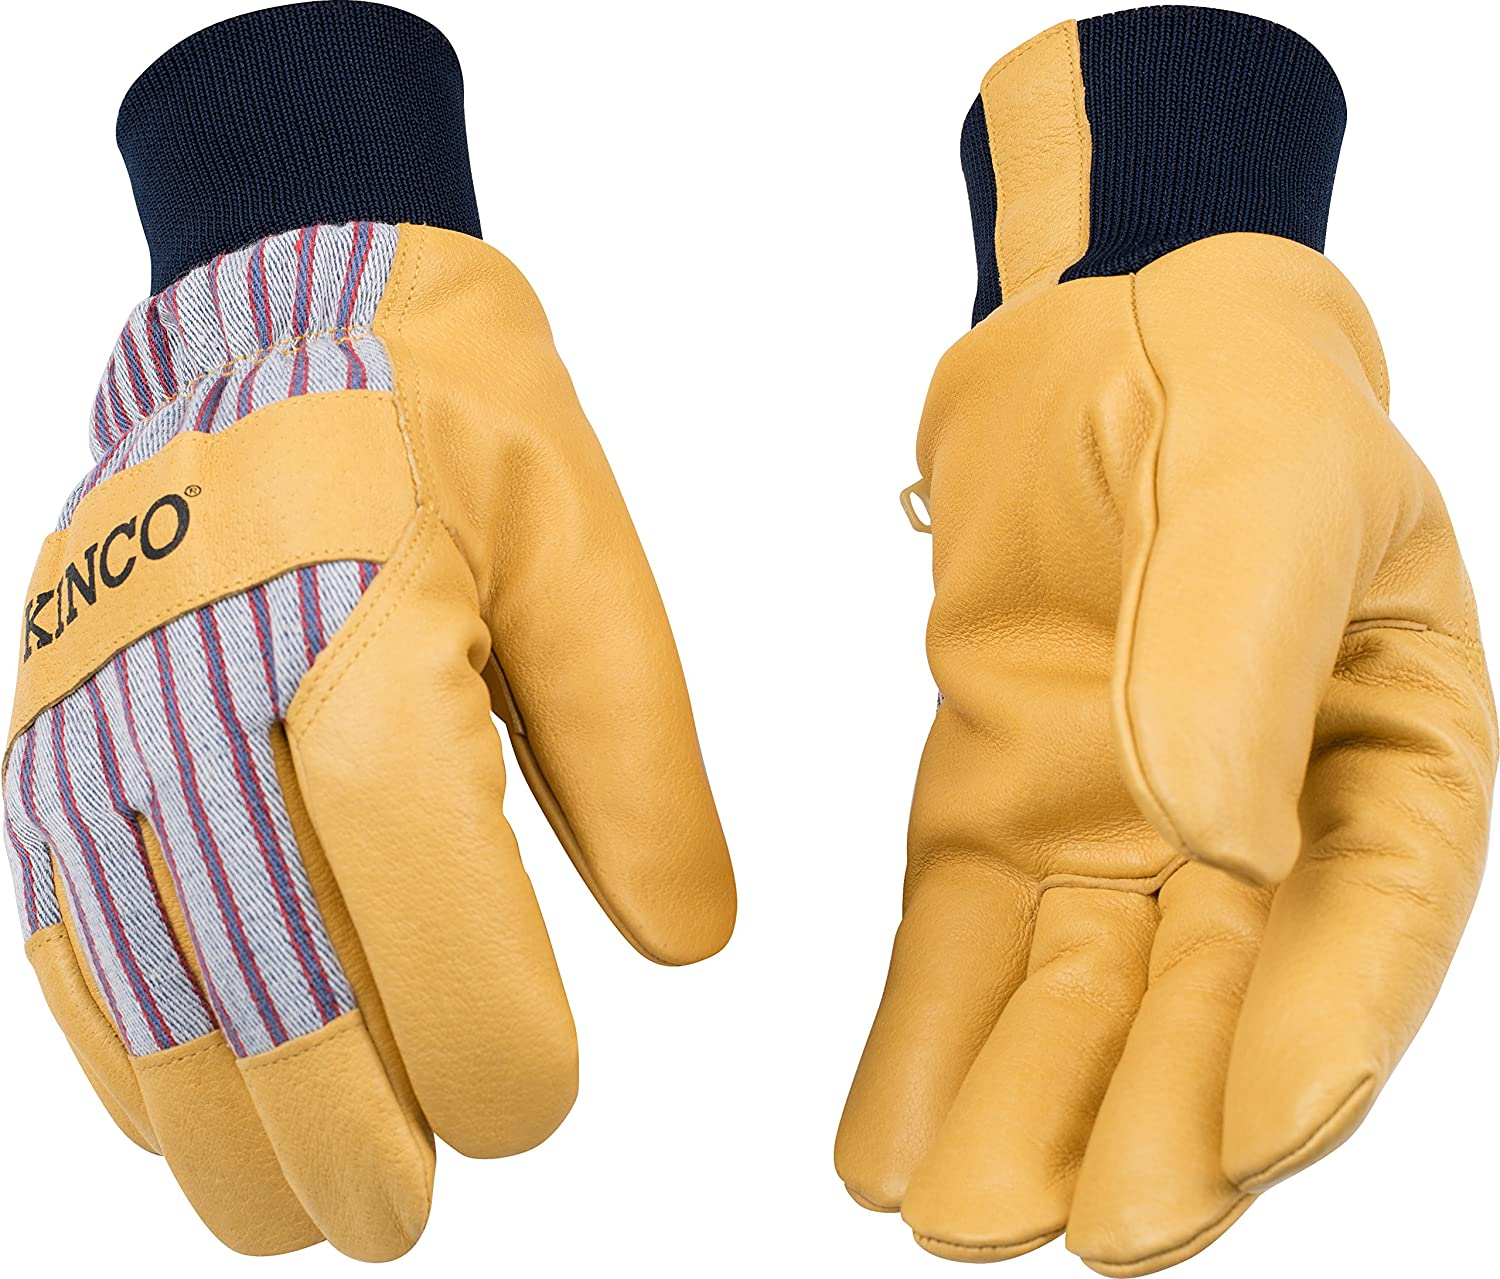 KINCO 1927KW-M Men's Lined Grain Pigskin Gloves, Heat Keep Lining, Knit Wrist, Medium, Golden